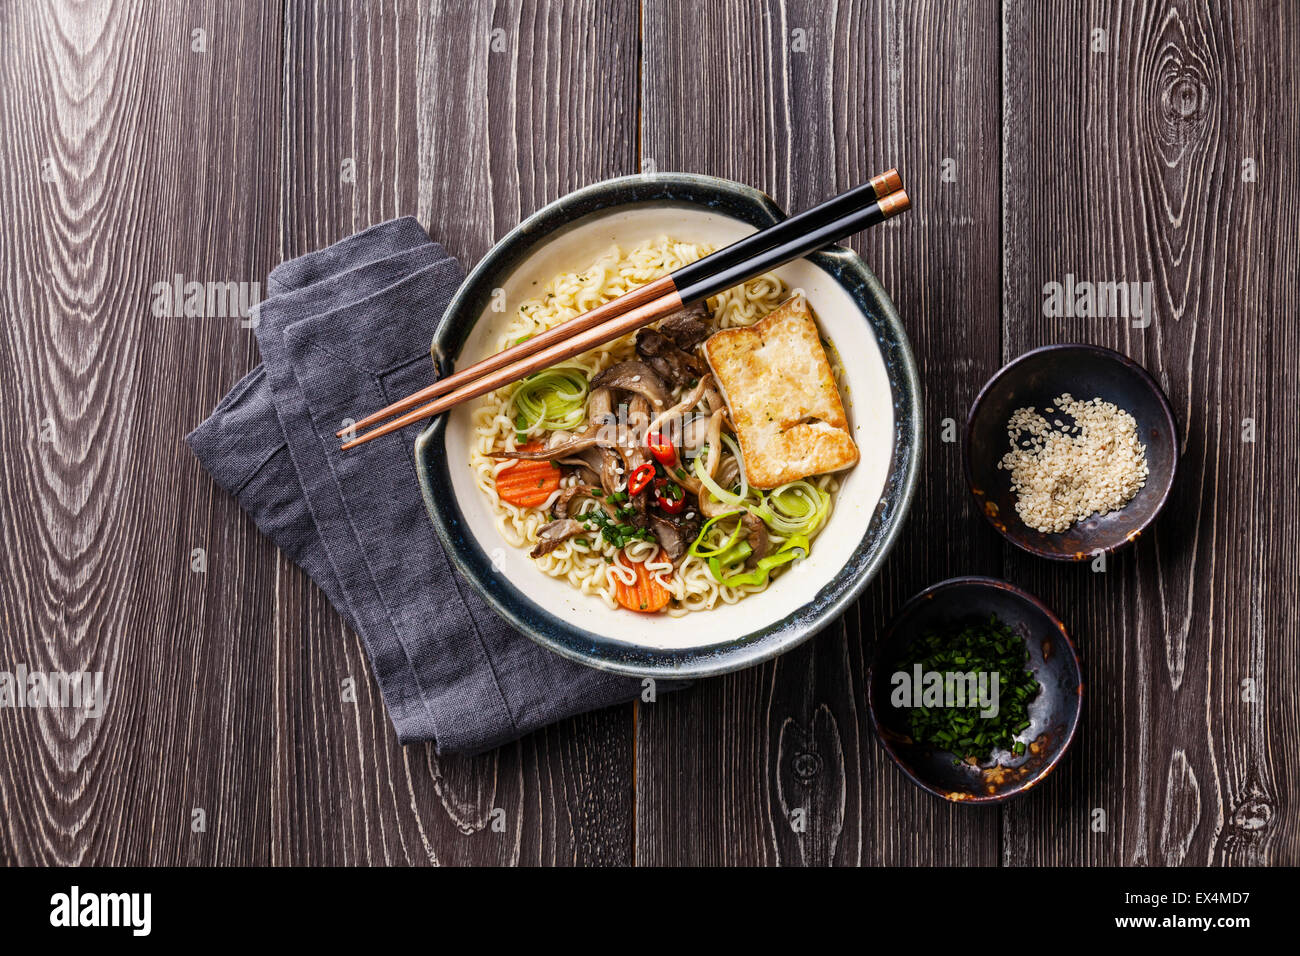 Asian noodles with tofu, oyster mushrooms and vegetables in bowl on gray wooden background - Stock Image